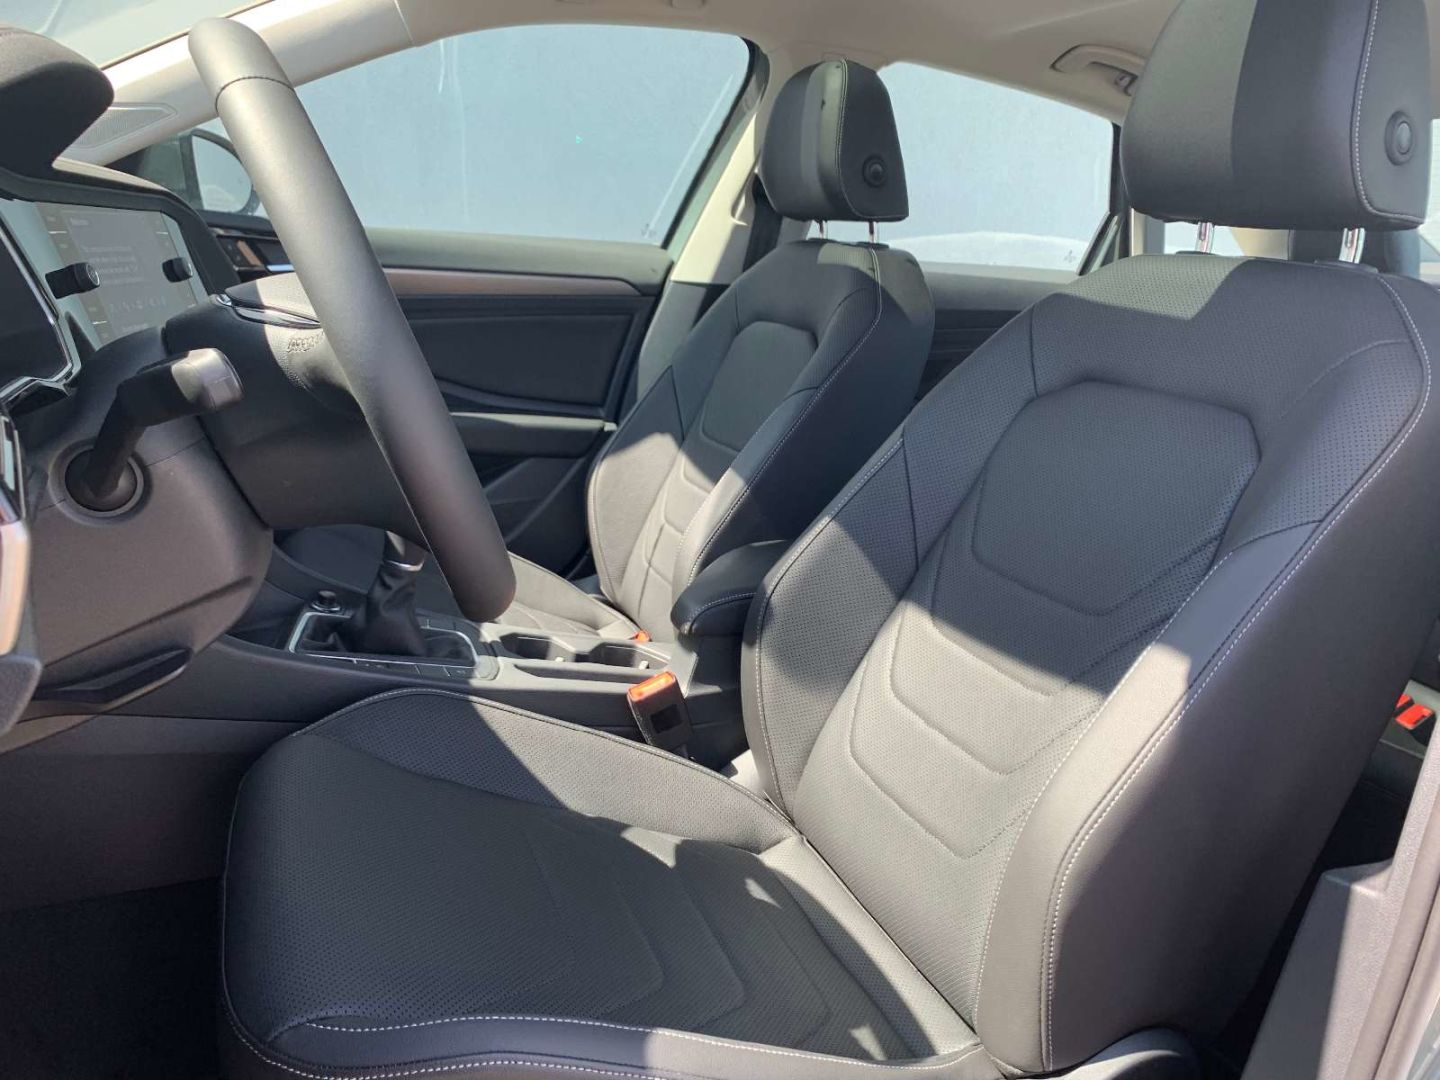 2019 Volkswagen Jetta Execline for sale in Edmonton, Alberta